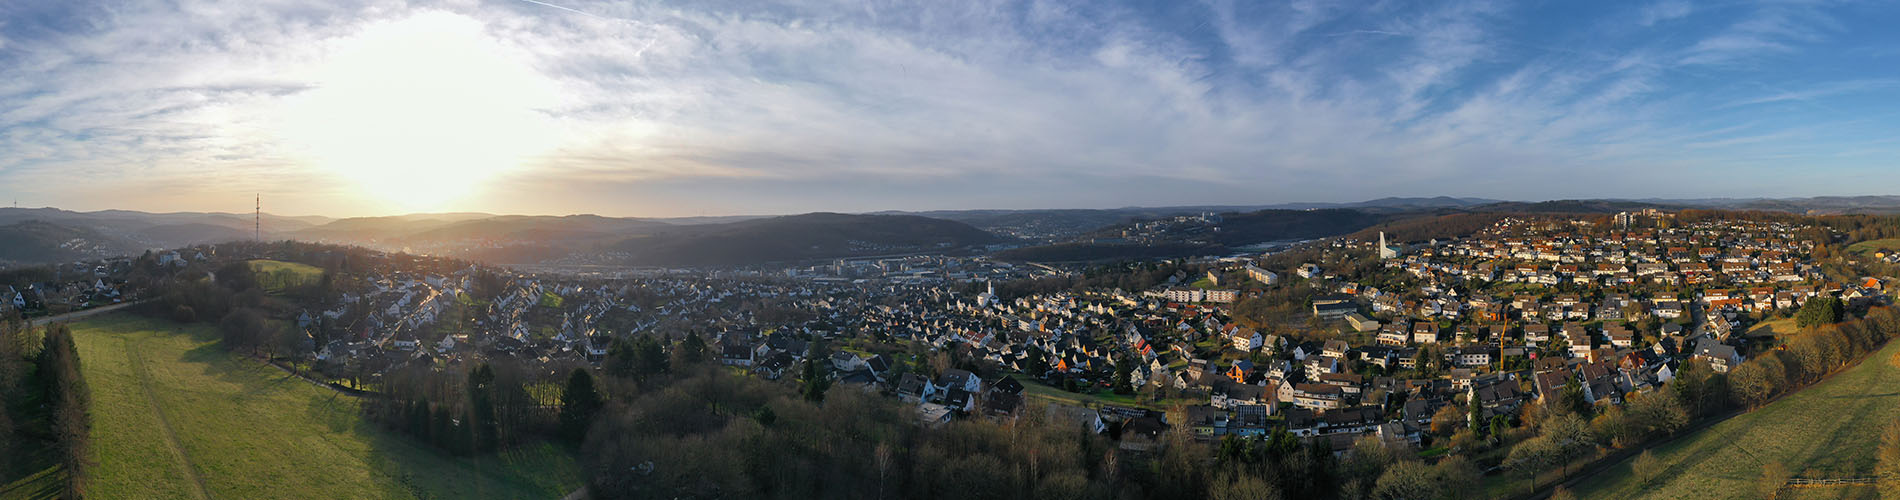 siegen germany cityscape in the winter from above with evening sun